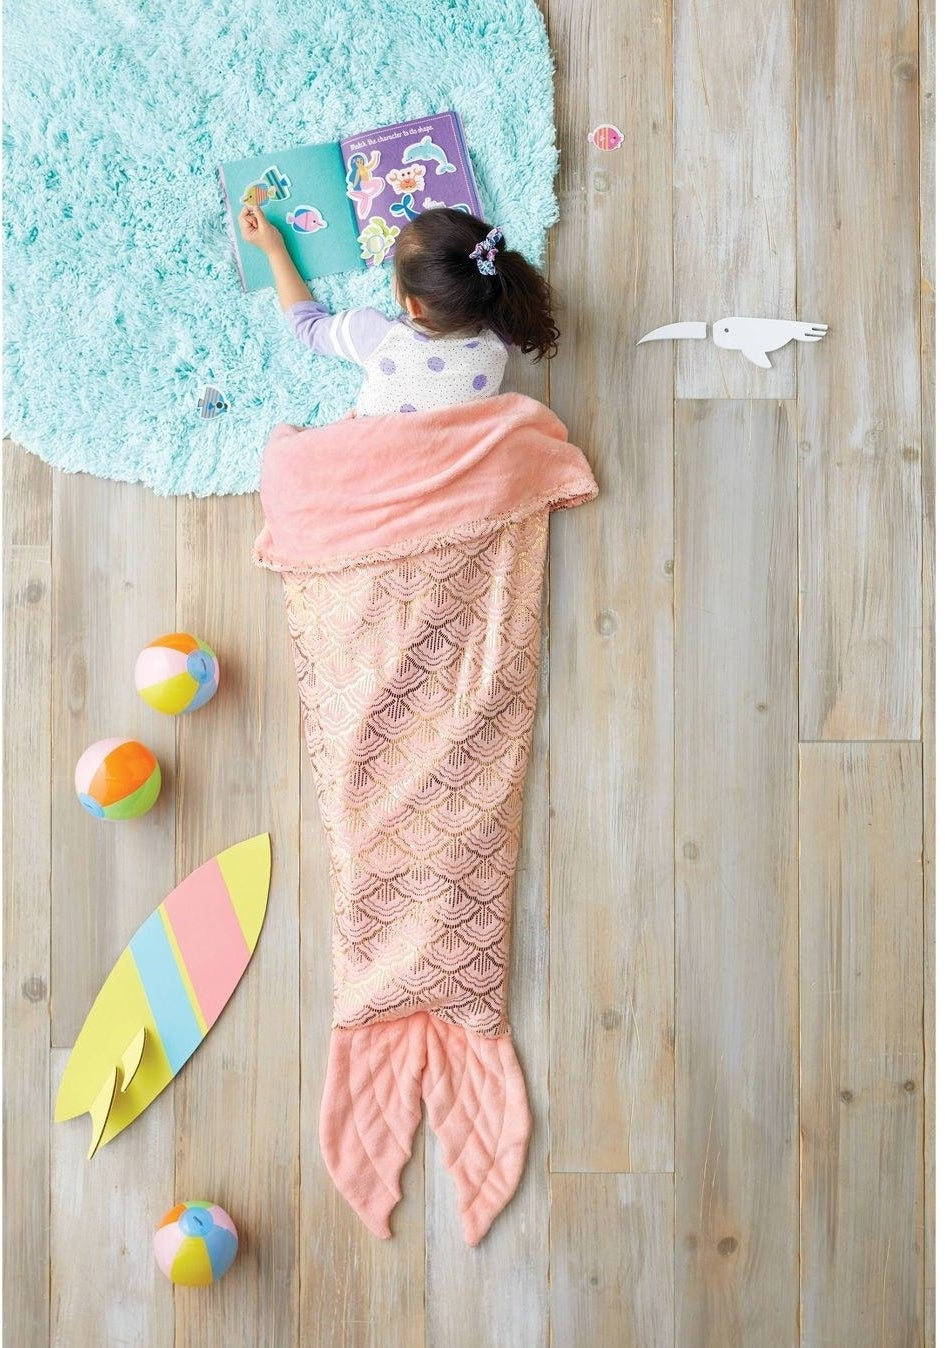 A child wrapped in a sparkly pink blanket that makes them look like they have a mermaid tail